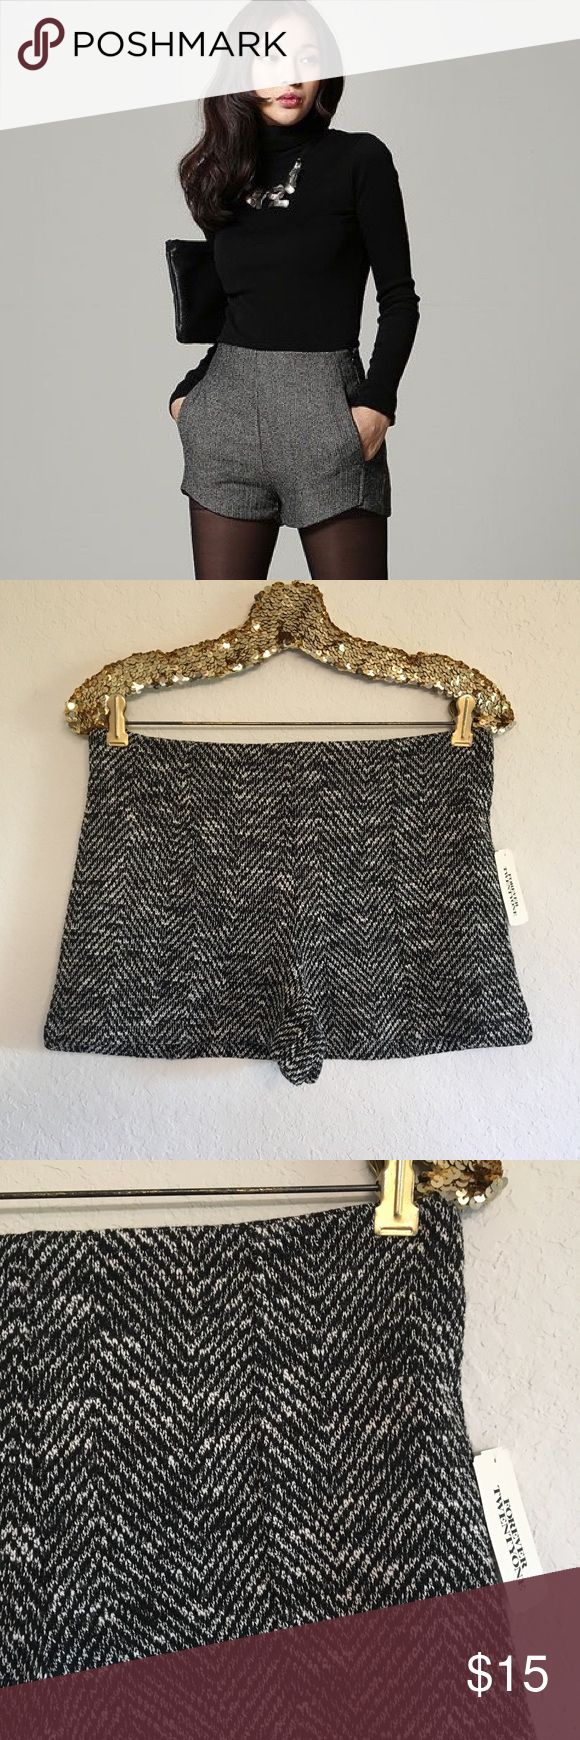 ✨NWT✨ Forever 21 Knit Shorts These brand new Forever 21 knit shorts are so stylish and great for fall! They would look so cute paired with tights and boots!  🚭 From a smoke-free home ❌ No trades or off PoshMark sales 🛍 Bundles welcome and encouraged 👌🏻 Reasonable offers welcome ⚡️ Same/next day shipping 🌬 All items are steamed before shipping Forever 21 Shorts